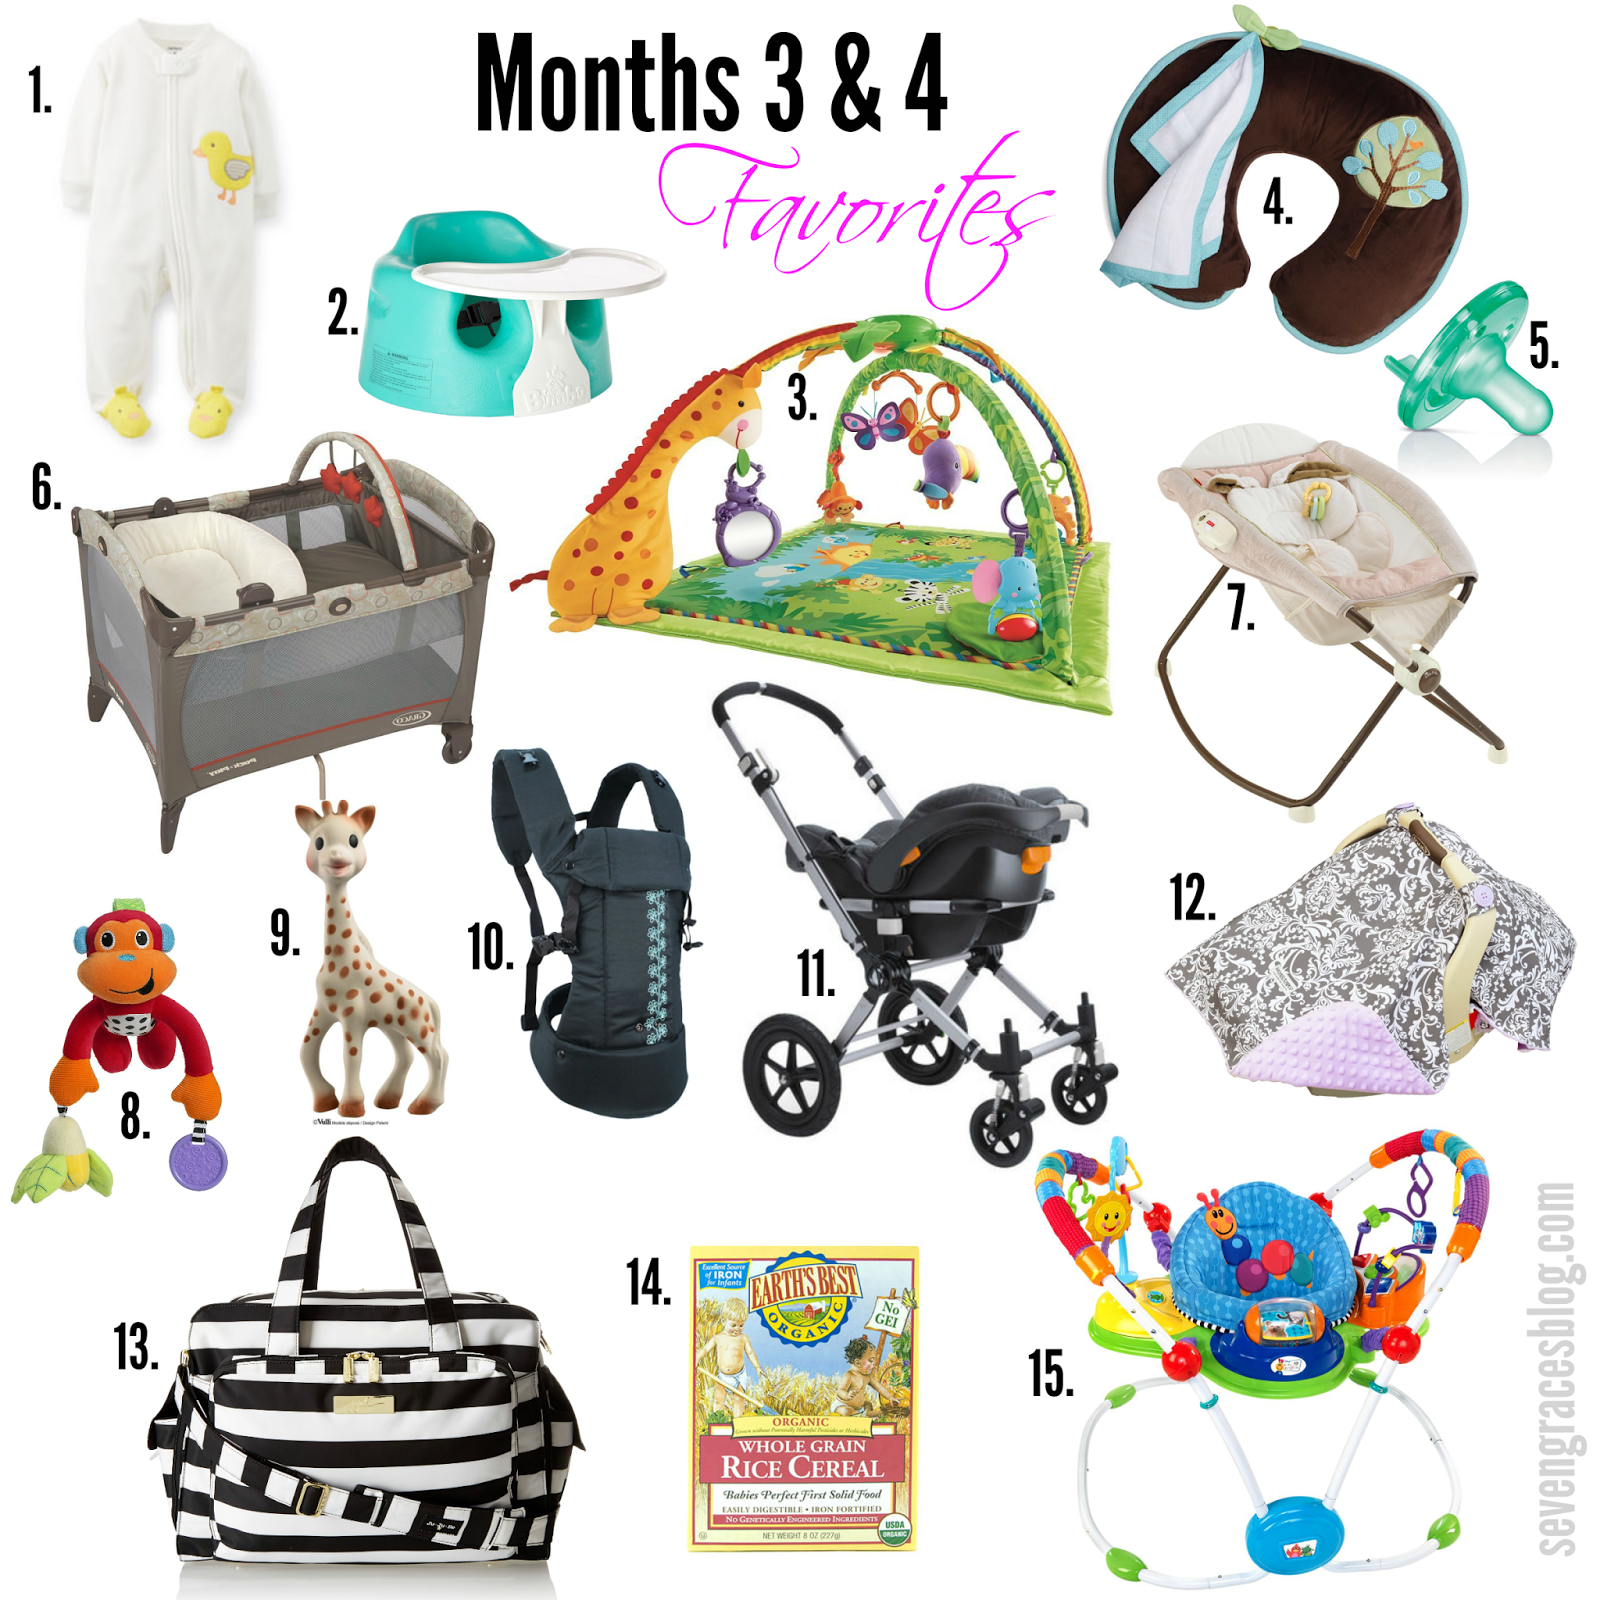 Seven Graces: Top 15 Baby Items for Months 3 & 4